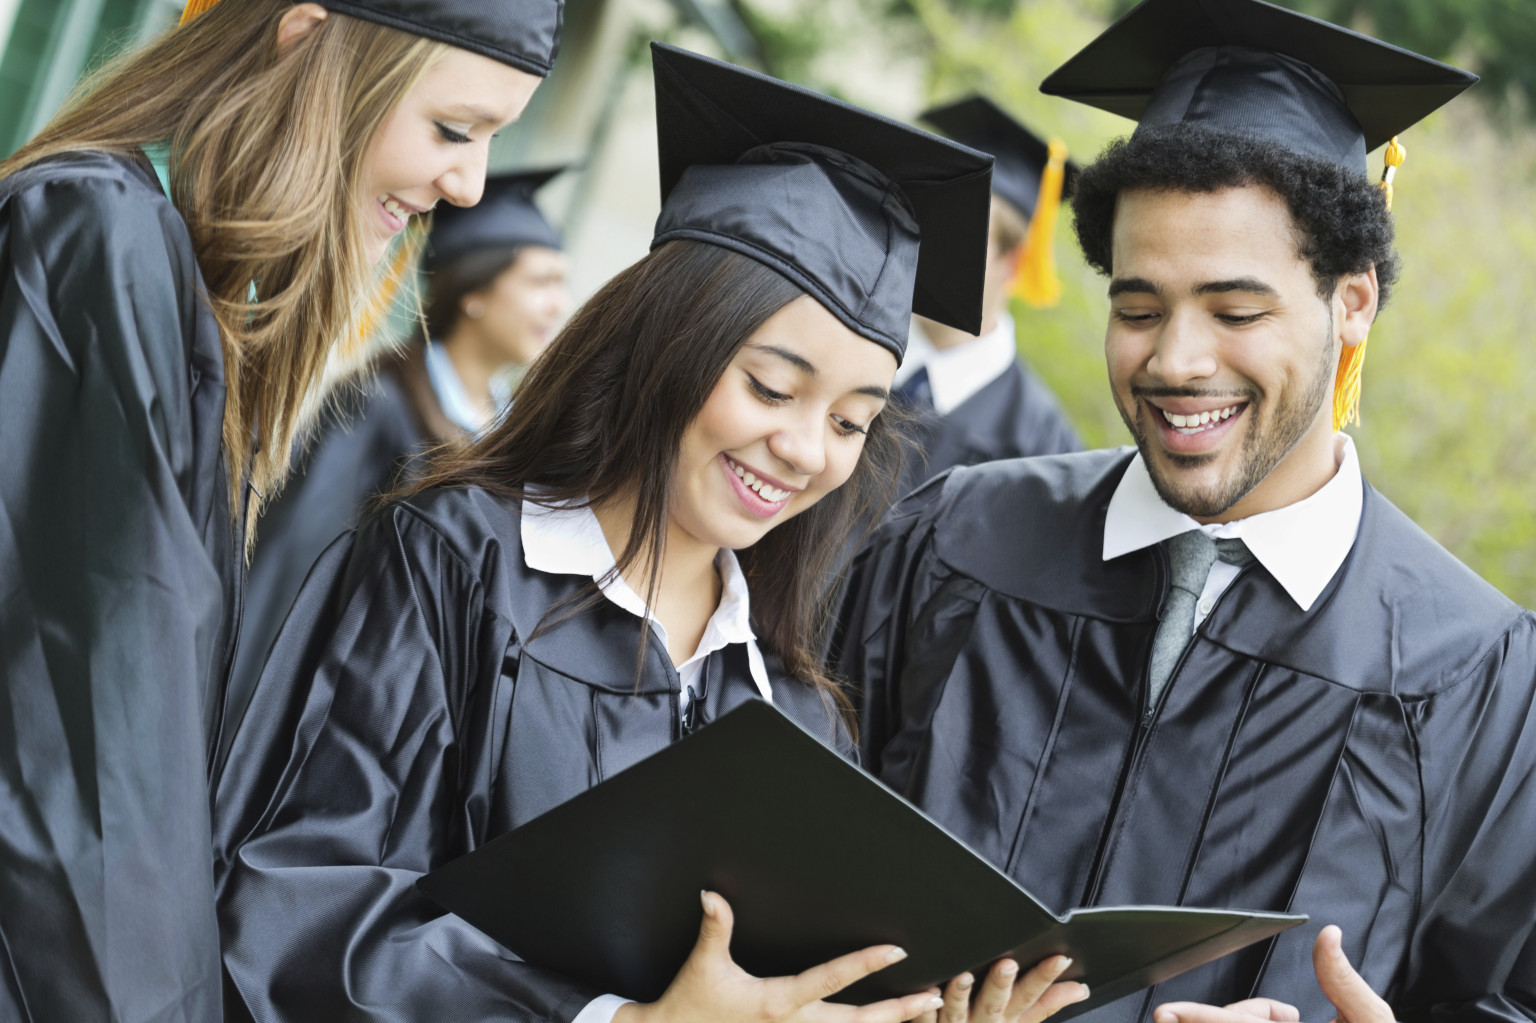 Latino And Low-Income Students Underrepresented At Top